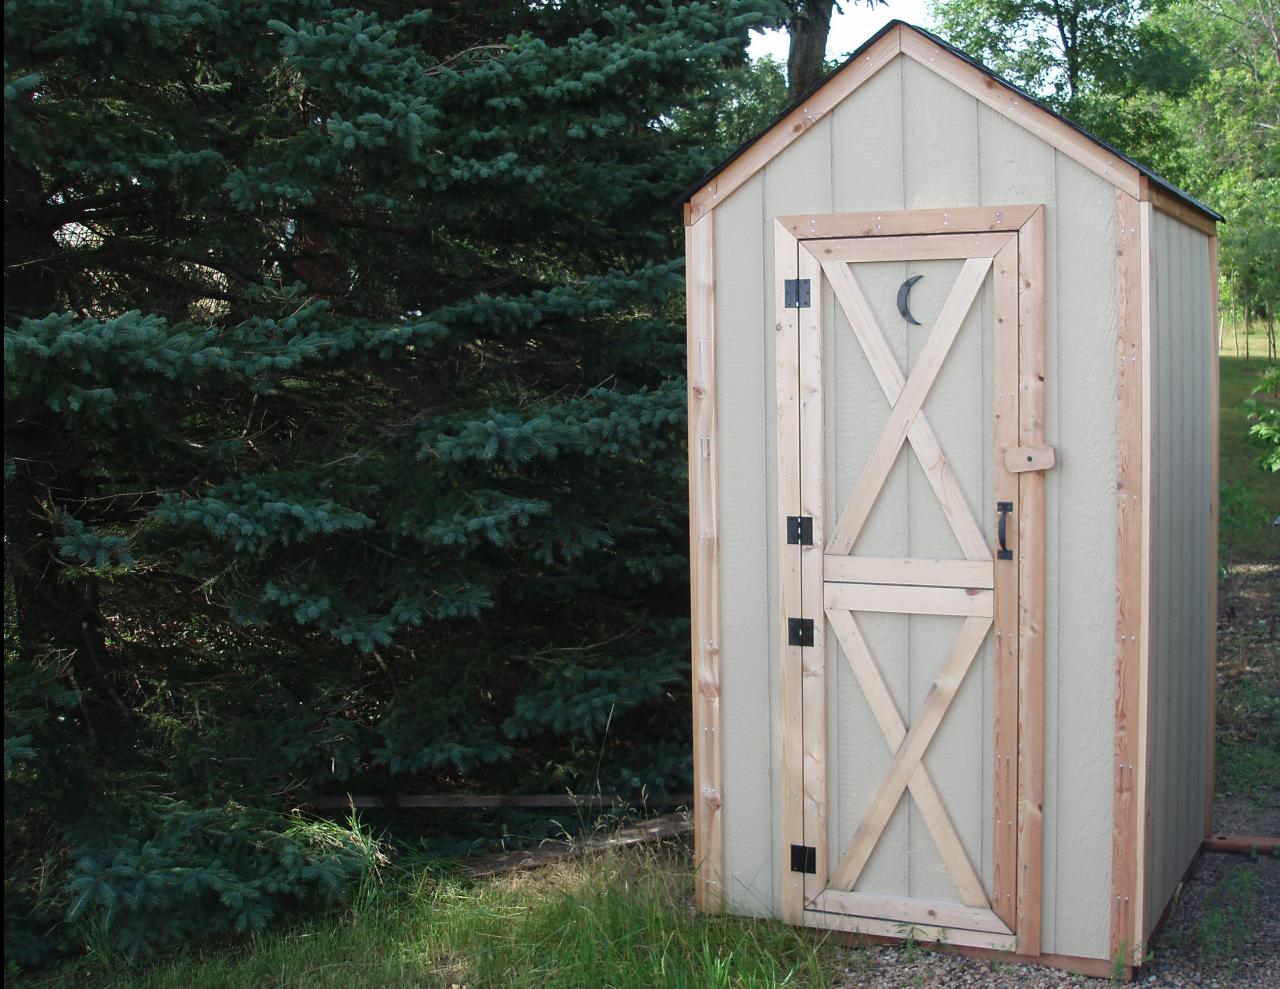 Wild bills wood works old fashioned outhouses for Outhouse pictures